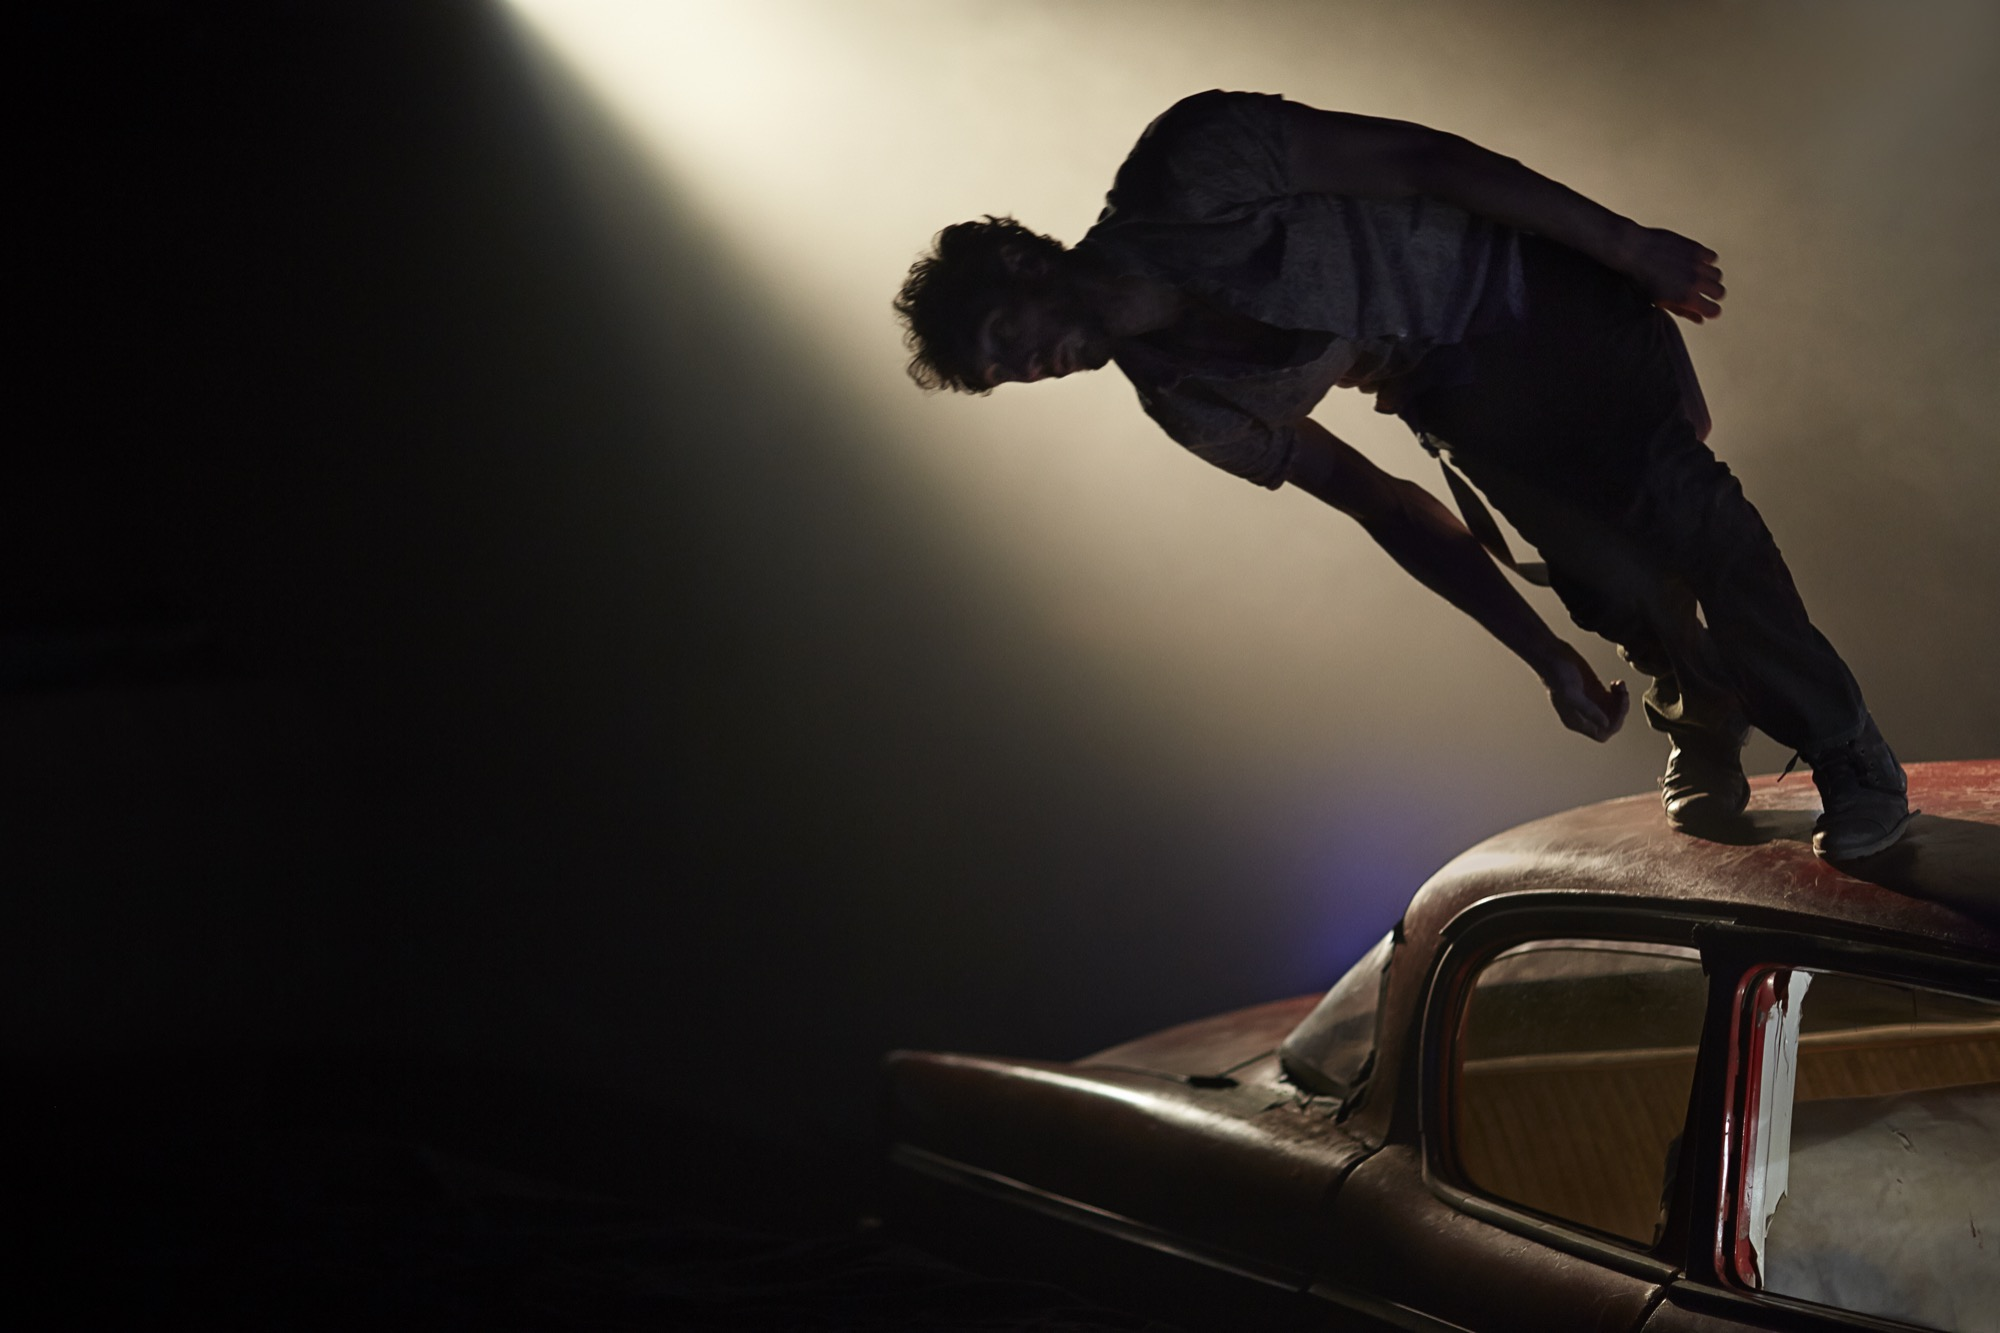 Man falling of the roof of a vintage car